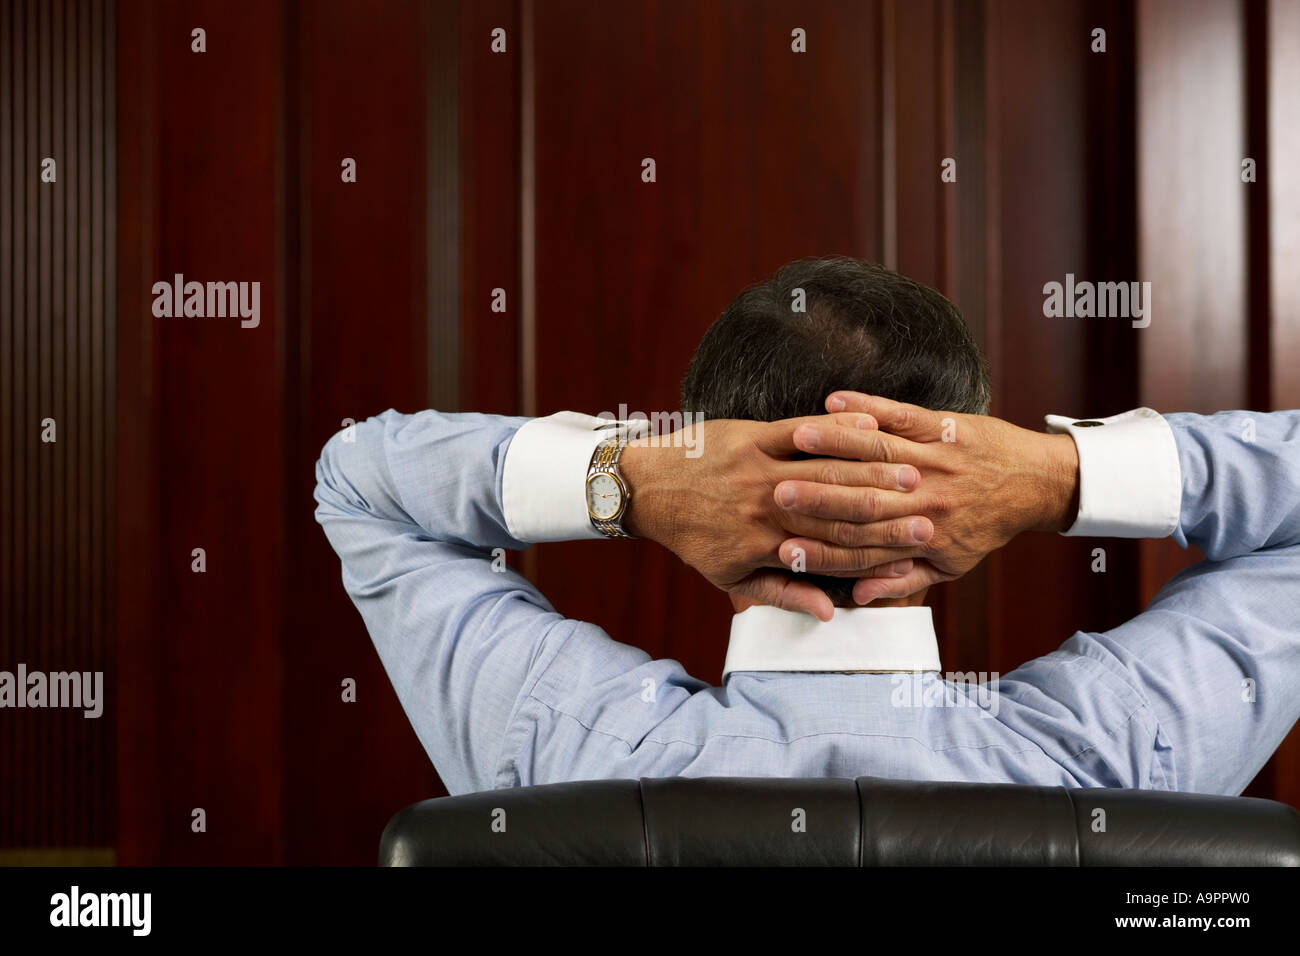 Businessman relaxing with hands behind head - Stock Image